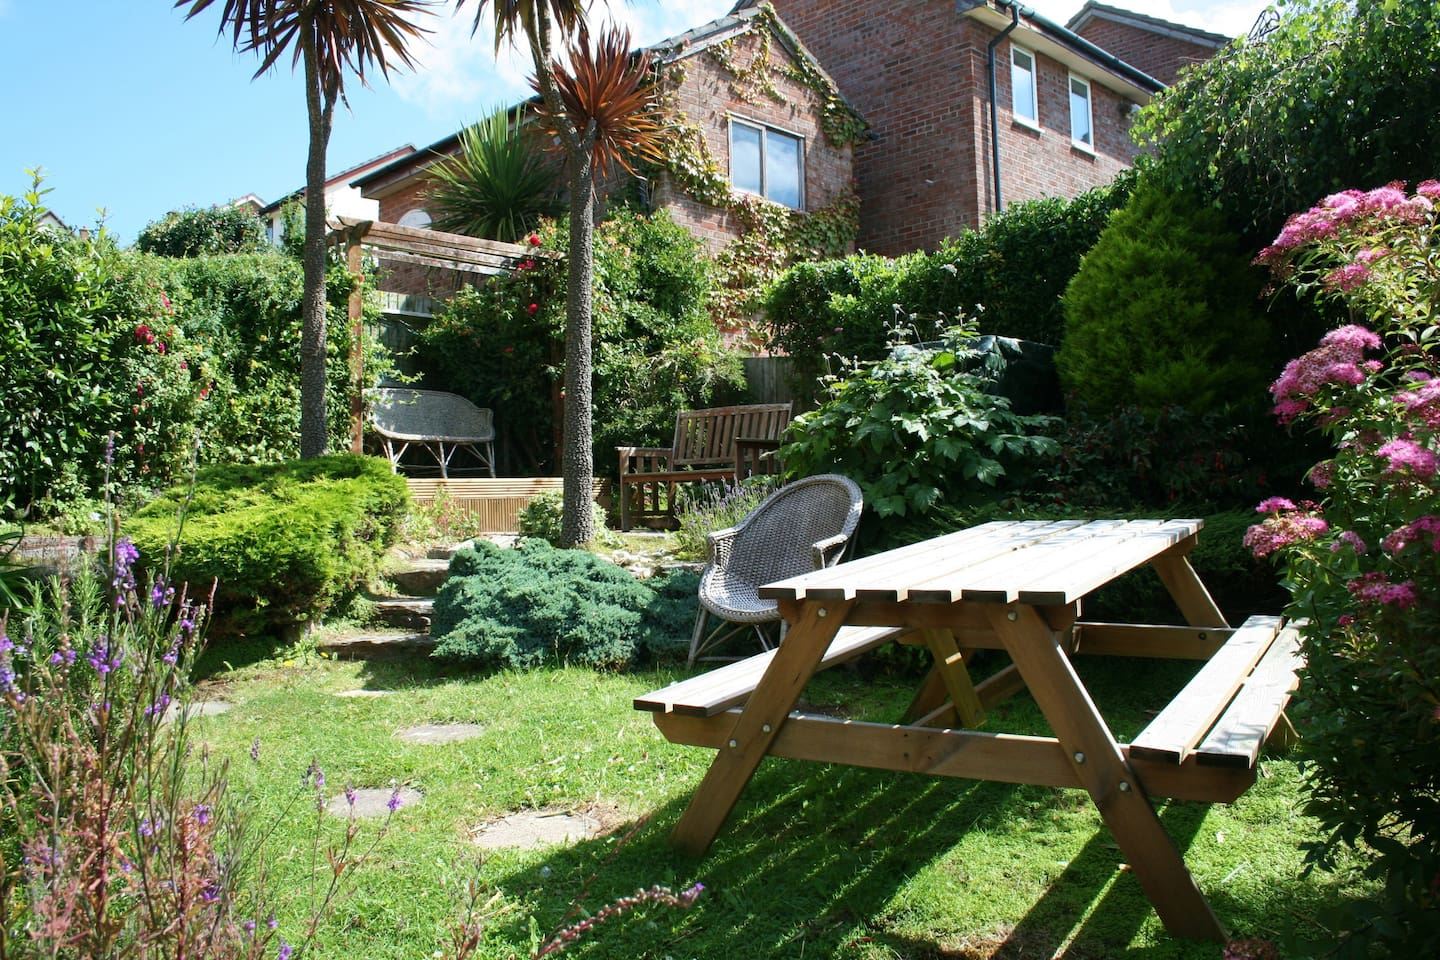 Landscaped Gardens with BBQ and Seating